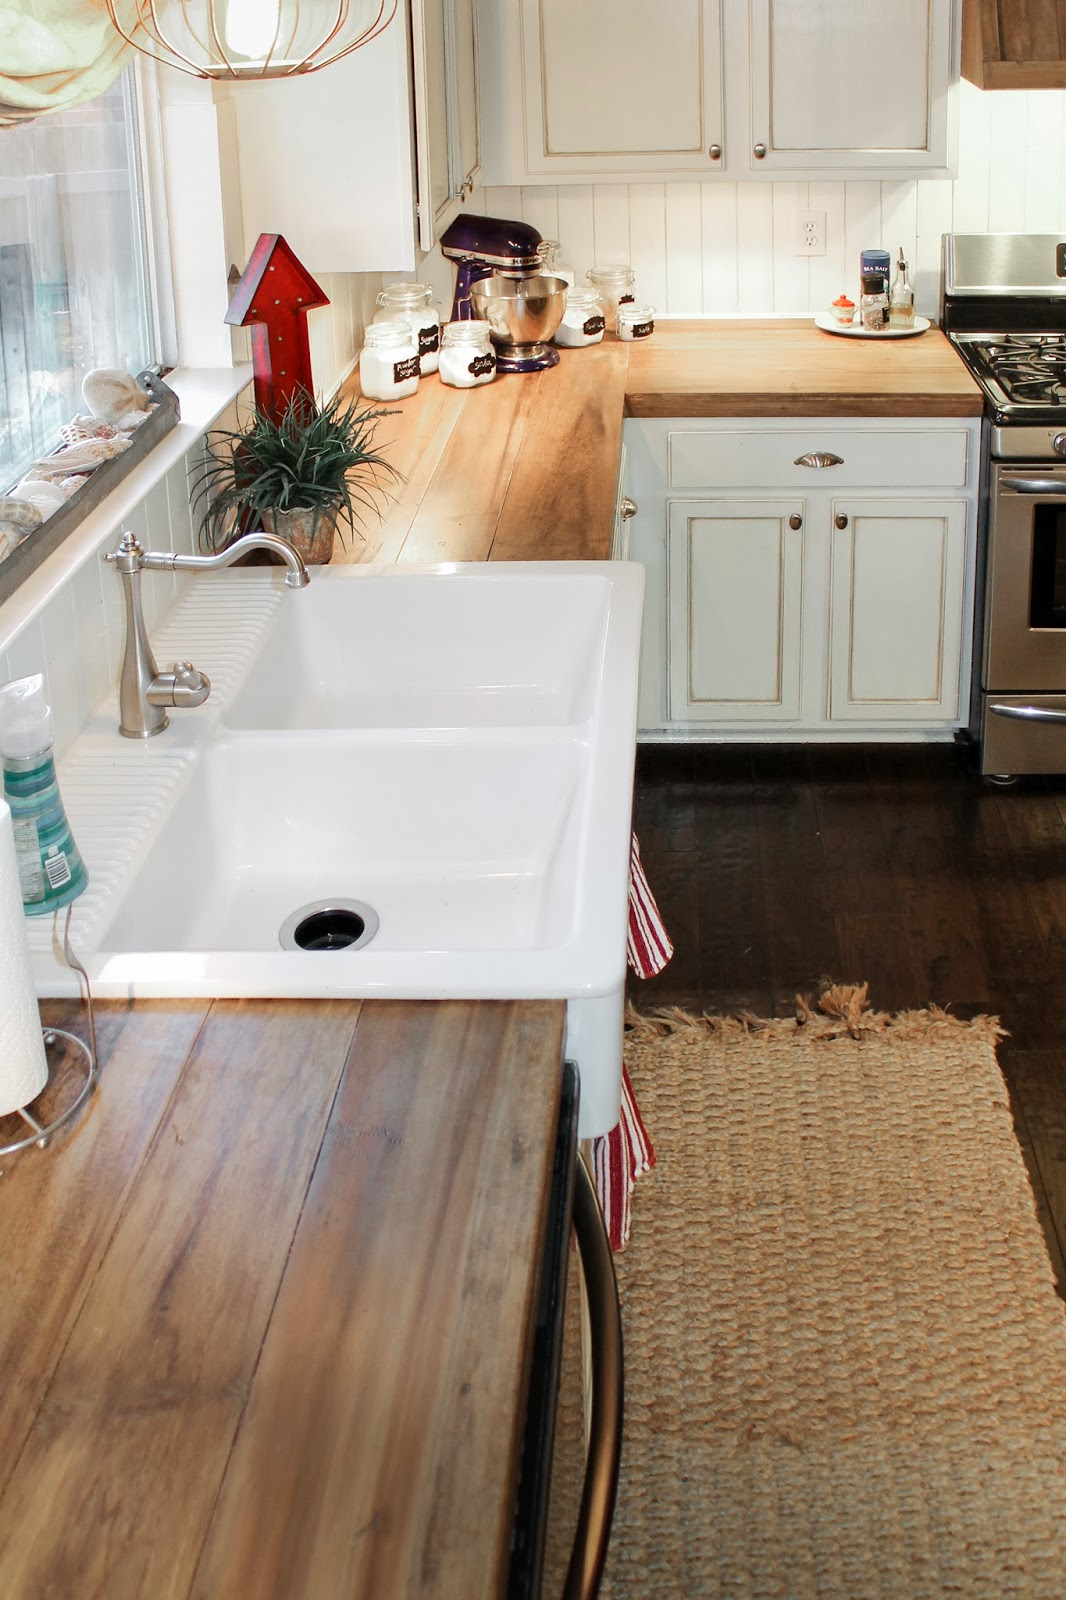 faux reclaimed wood kitchen counters | The Ragged Wren on Remodelaholic.com & Remodelaholic | How to Create Faux Reclaimed Wood Countertops